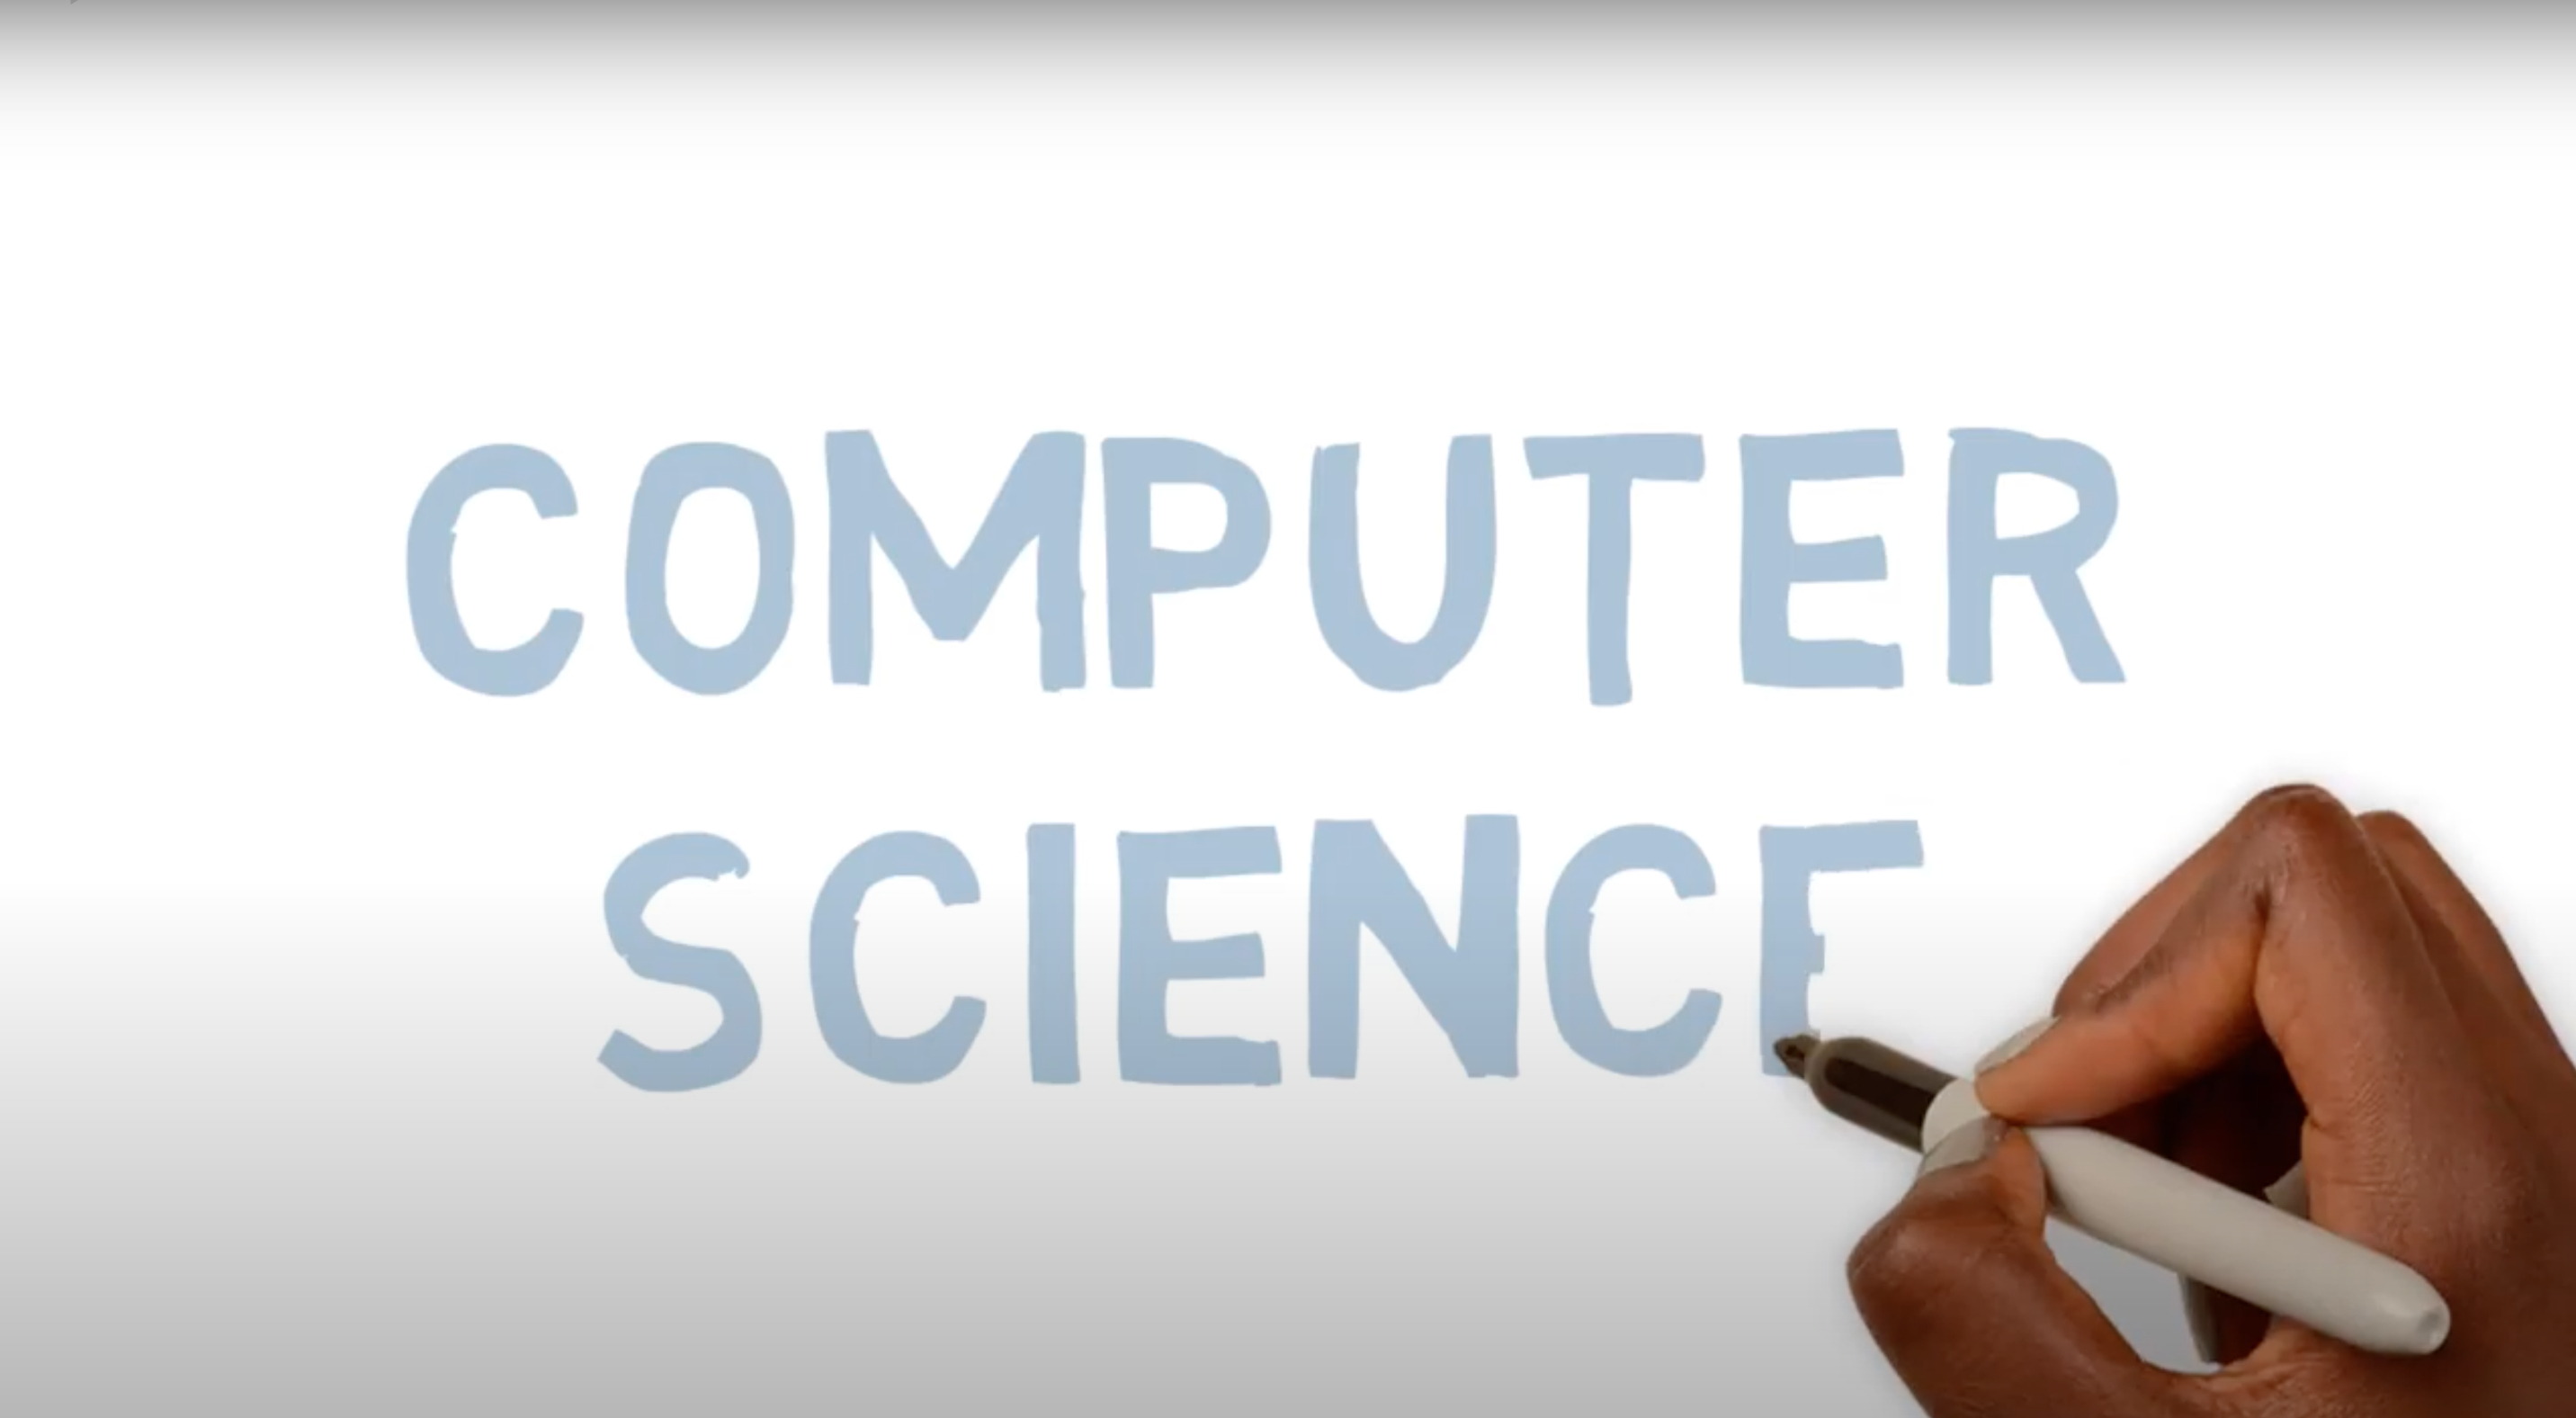 hand writing the words 'computer science' on a screen